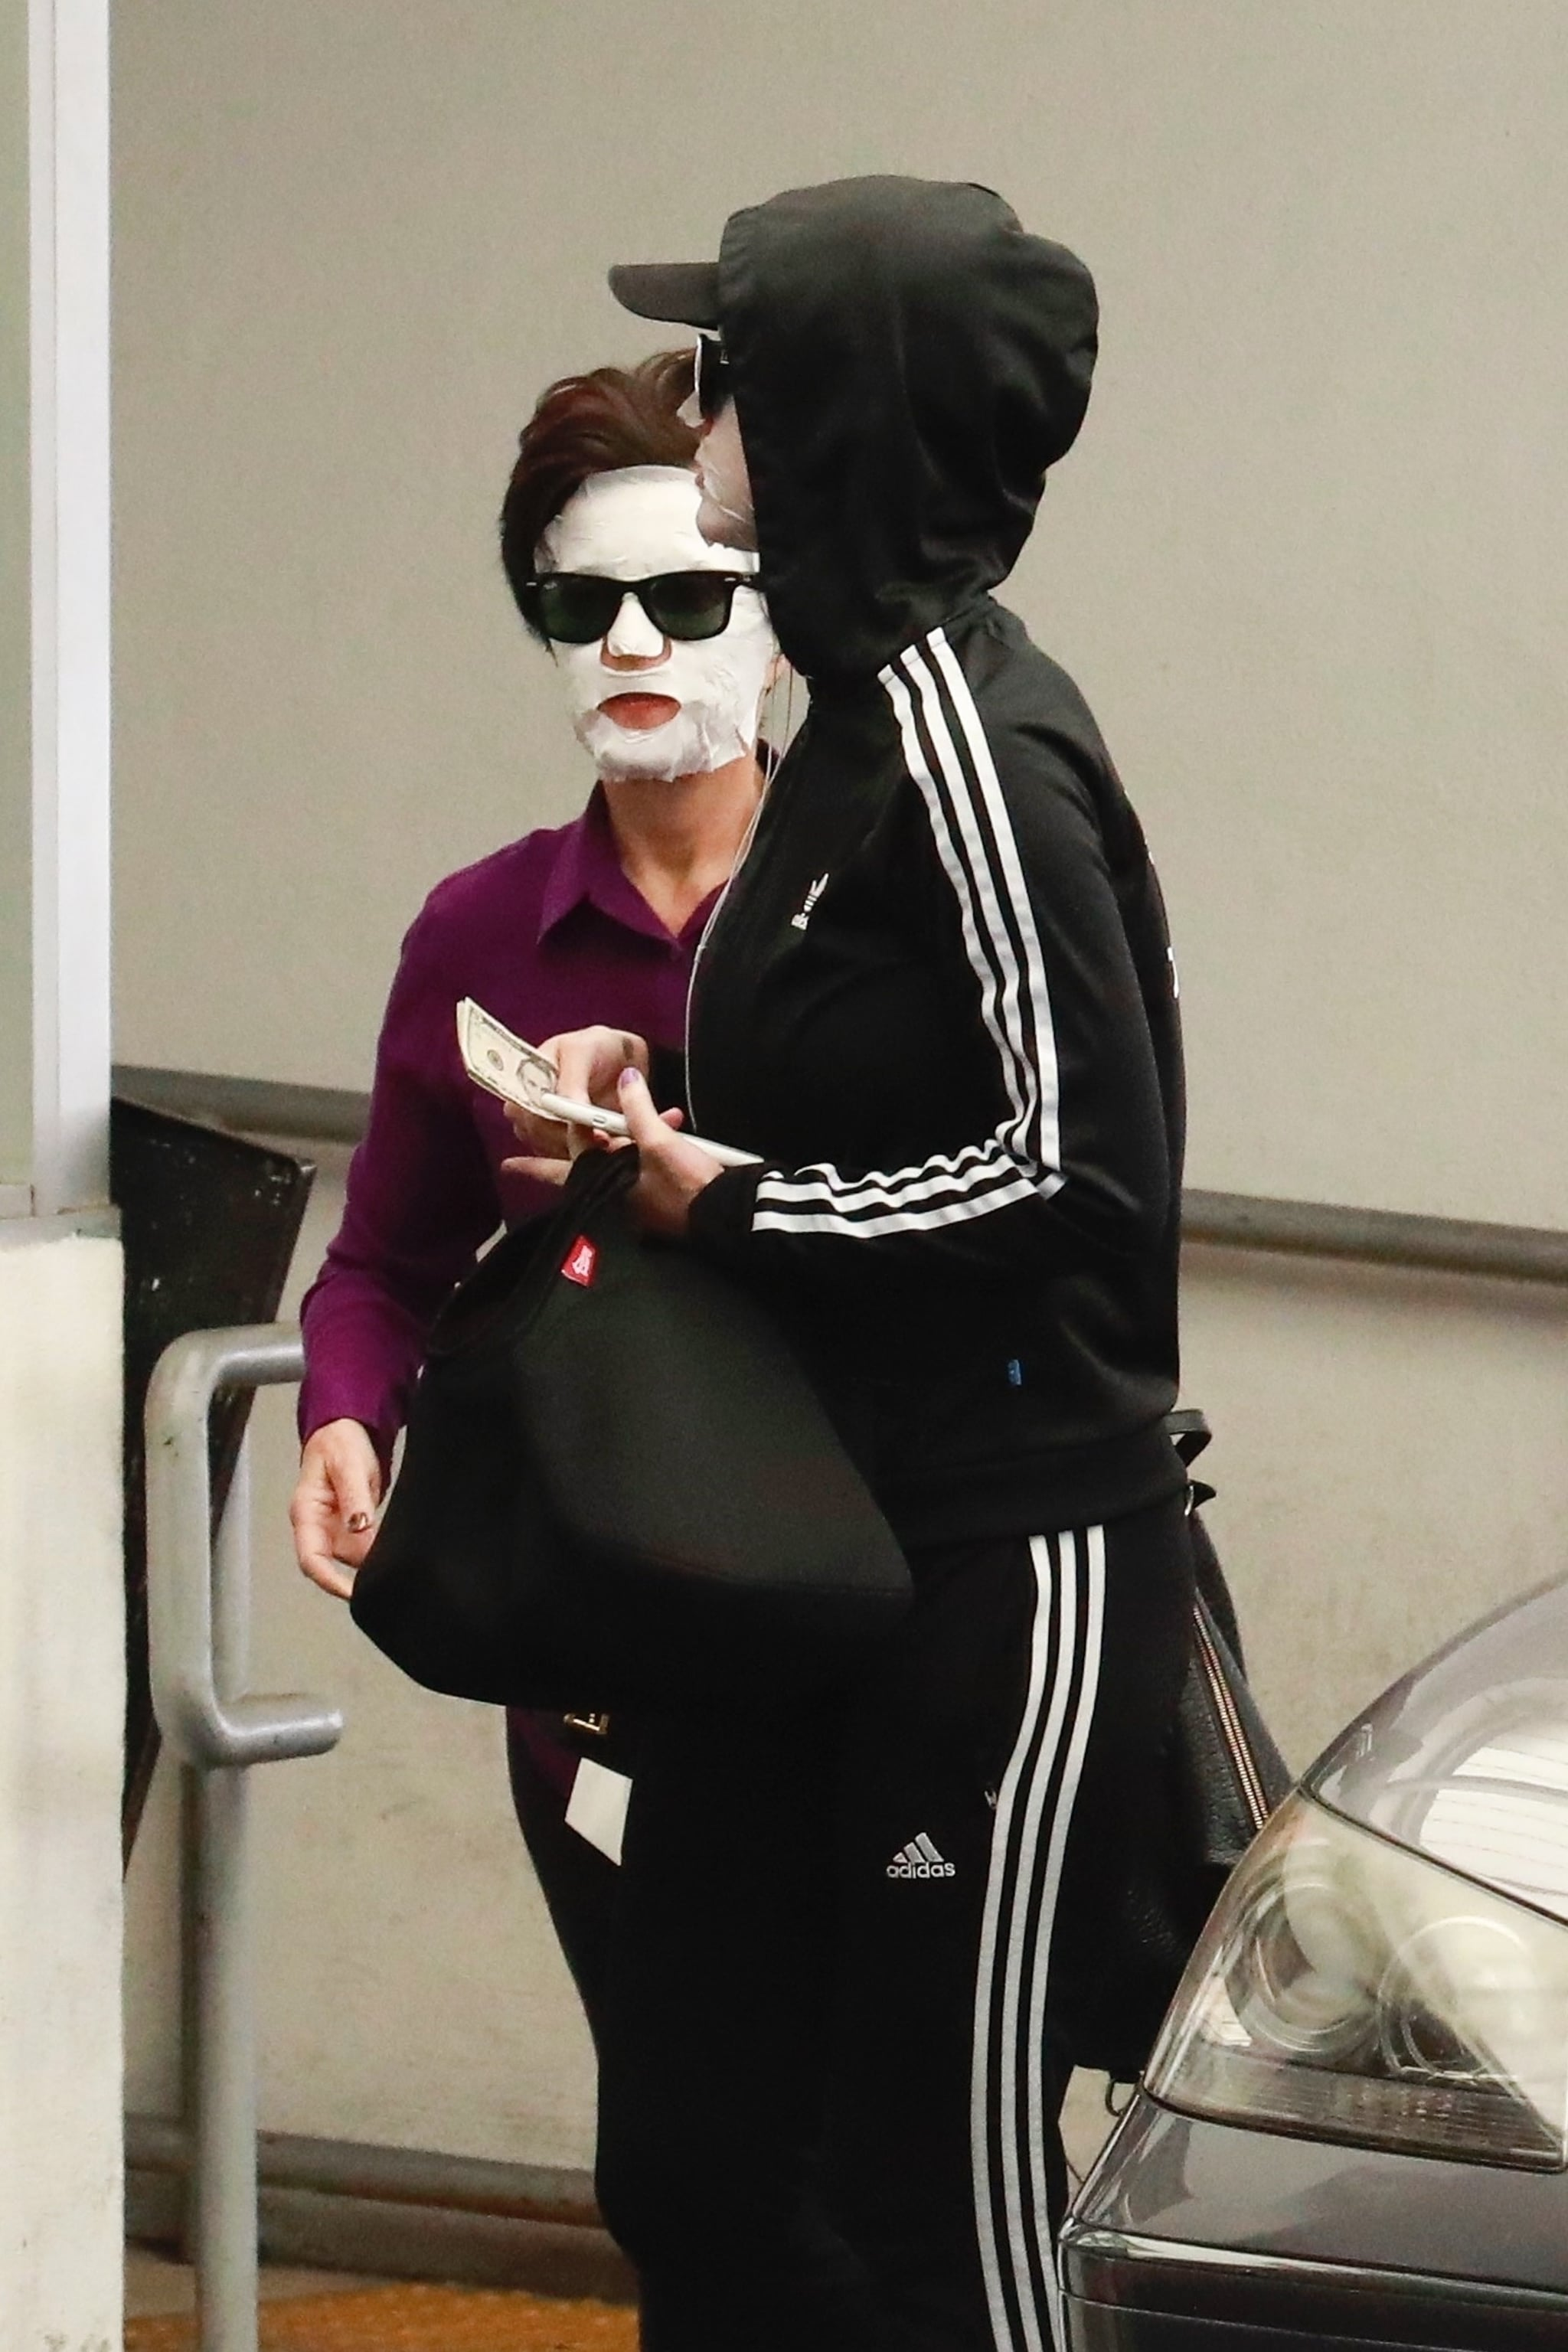 Beverly Hills, CA  - *EXCLUSIVE*  - Katy Perry and her mom, Mary,  are spotted leaving a dermatology clinic in Beverly Hills the day after Mother's Day. The mother and daughter appeared to enjoy a post Mother's Day facial treatment that they wore out of the centre and topped it off with sunglasses. Katy and Mary even kept the masks on in the car as they drove off. The valet managed to keep a straight face as he pulled up with their car but let's hope she didn't get pulled over!Pictured: Katy Perry, Mary PerryBACKGRID USA 15 MAY 2018 USA: +1 310 798 9111 / usasales@backgrid.comUK: +44 208 344 2007 / uksales@backgrid.com*UK Clients - Pictures Containing ChildrenPlease Pixelate Face Prior To Publication*